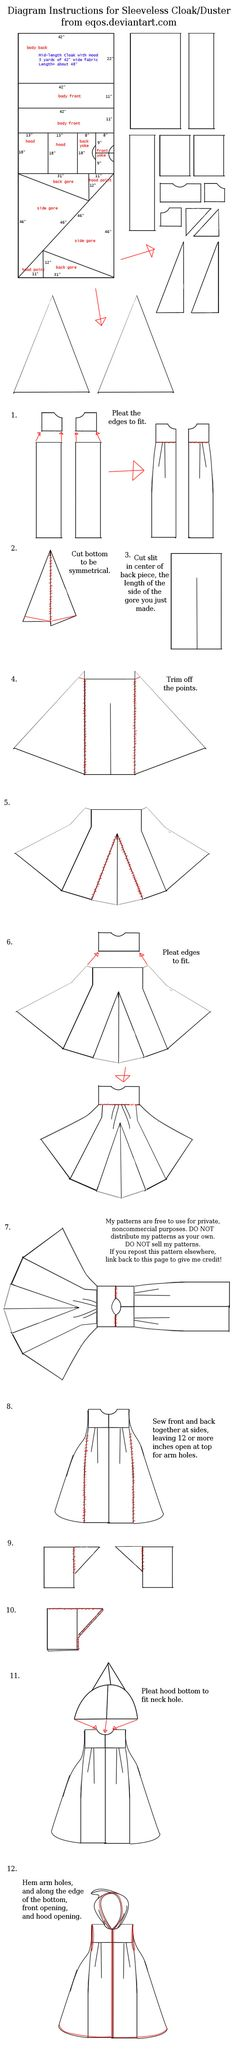 Diagram For Sleeveless Cloak/Duster by eqos.deviantart.com on @deviantART